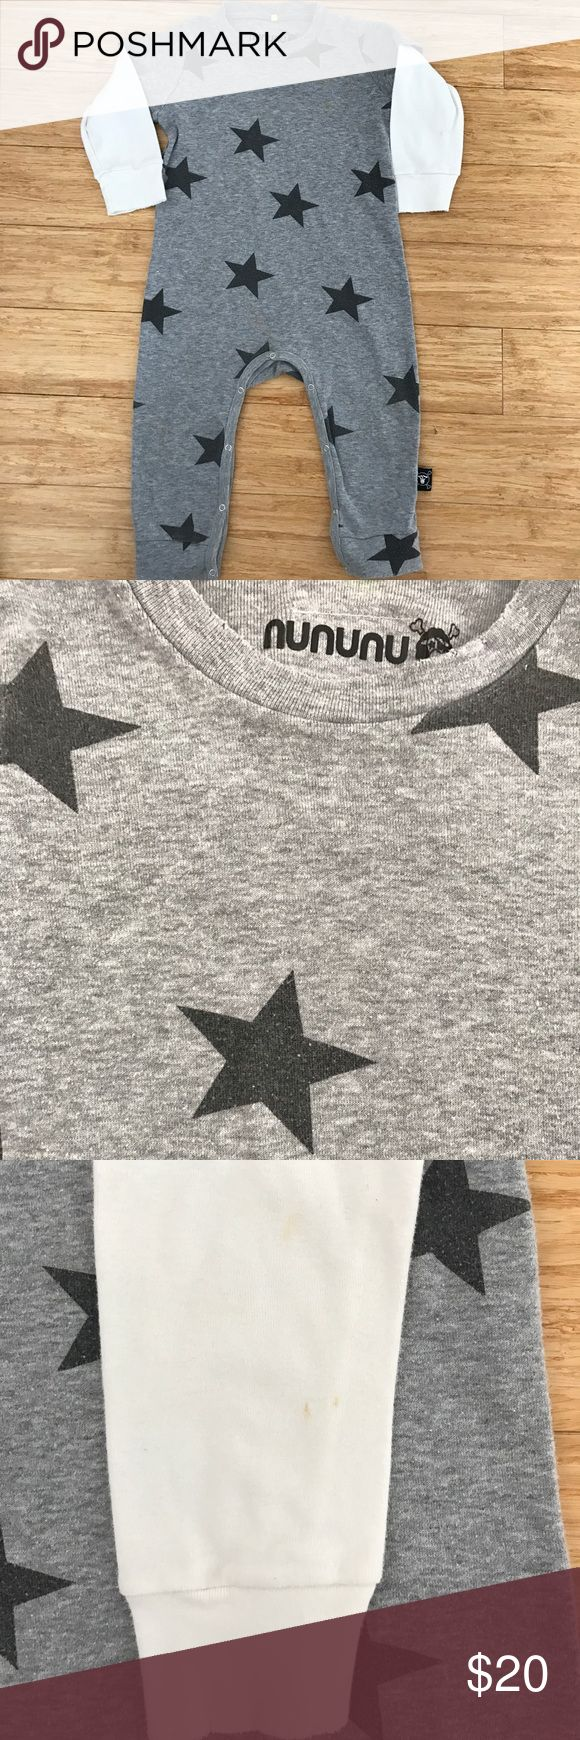 Nununu Grey One-piece In a very good used condition. Has a small stains on the sleeve ( pictured). Size 18-24 months. The one-piece is very soft and stylish. If you have any questions please comment below nununu One Pieces